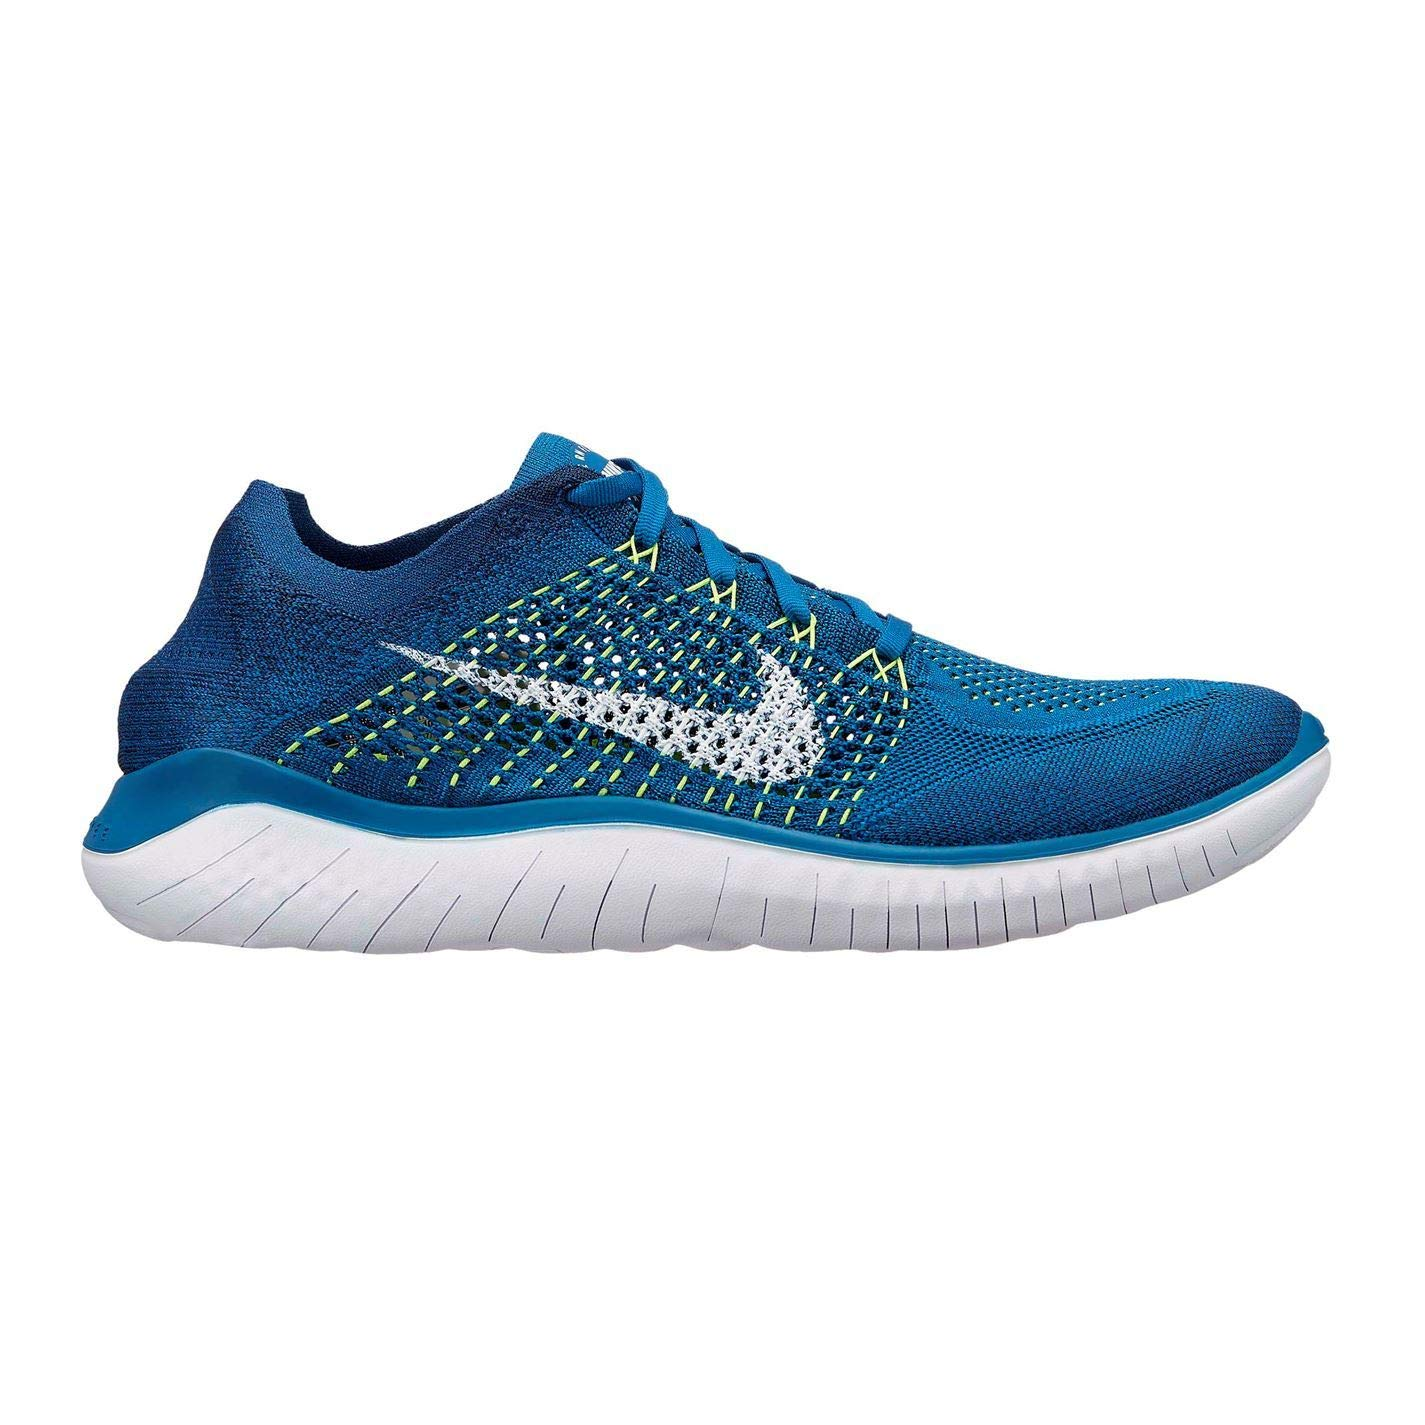 Green (UK9) (EU44) (US10) Official Nike Free RN Flyknit Running shoes Mens Fitness Jogging Trainers Sneakers